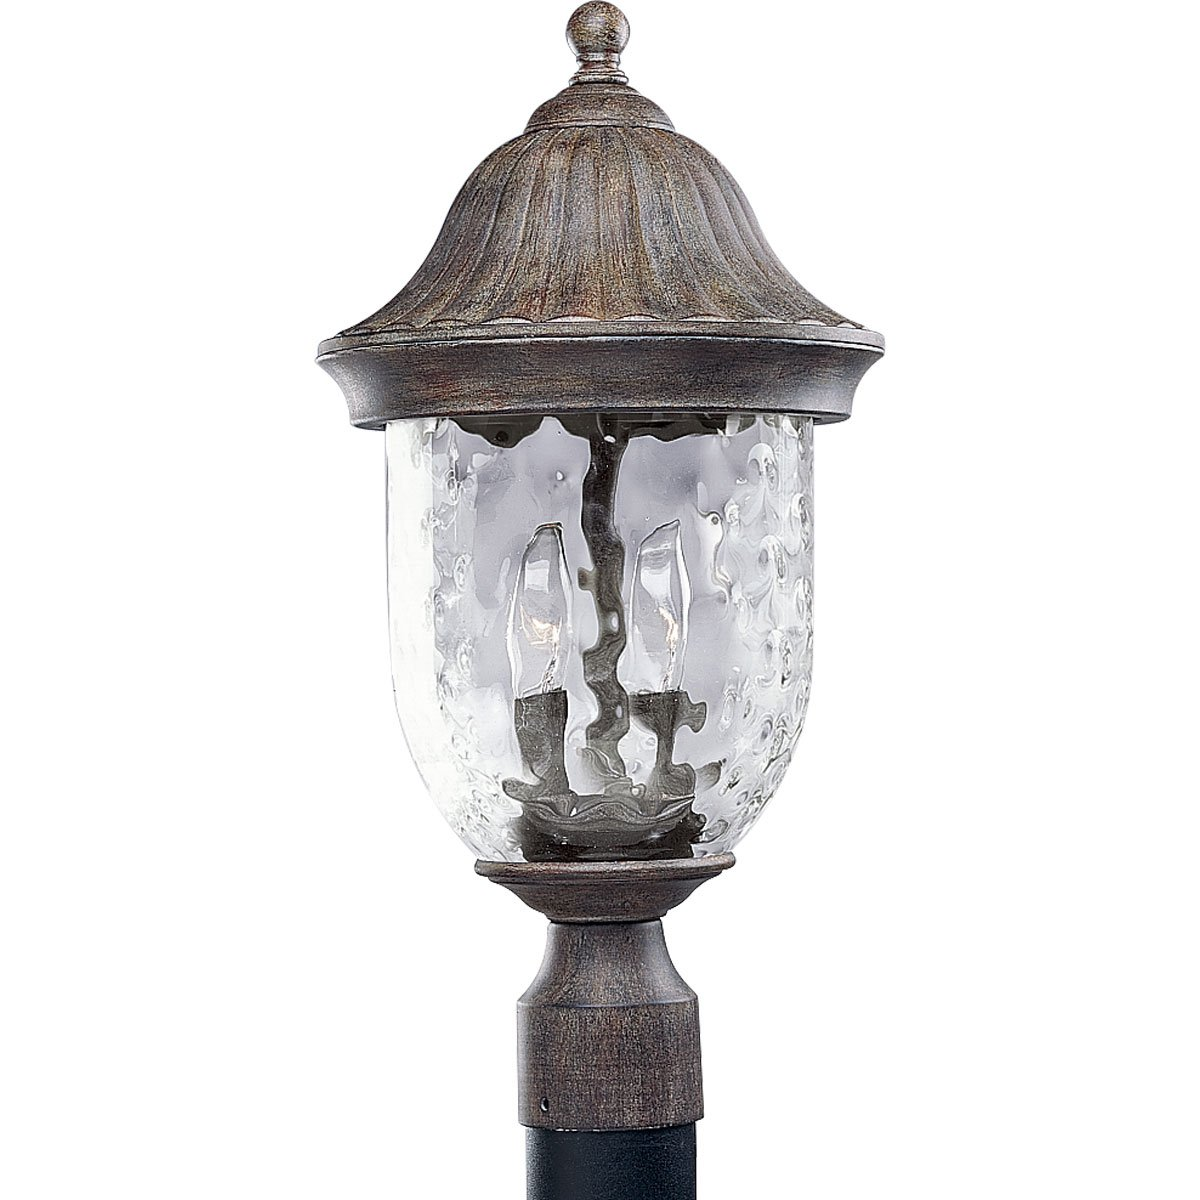 Progress lighting p5429 31 2 light post lantern with optic hammered progress lighting p5429 31 2 light post lantern with optic hammered clear glass to complement the new fieldstone finish textured black decorative ceiling mozeypictures Choice Image